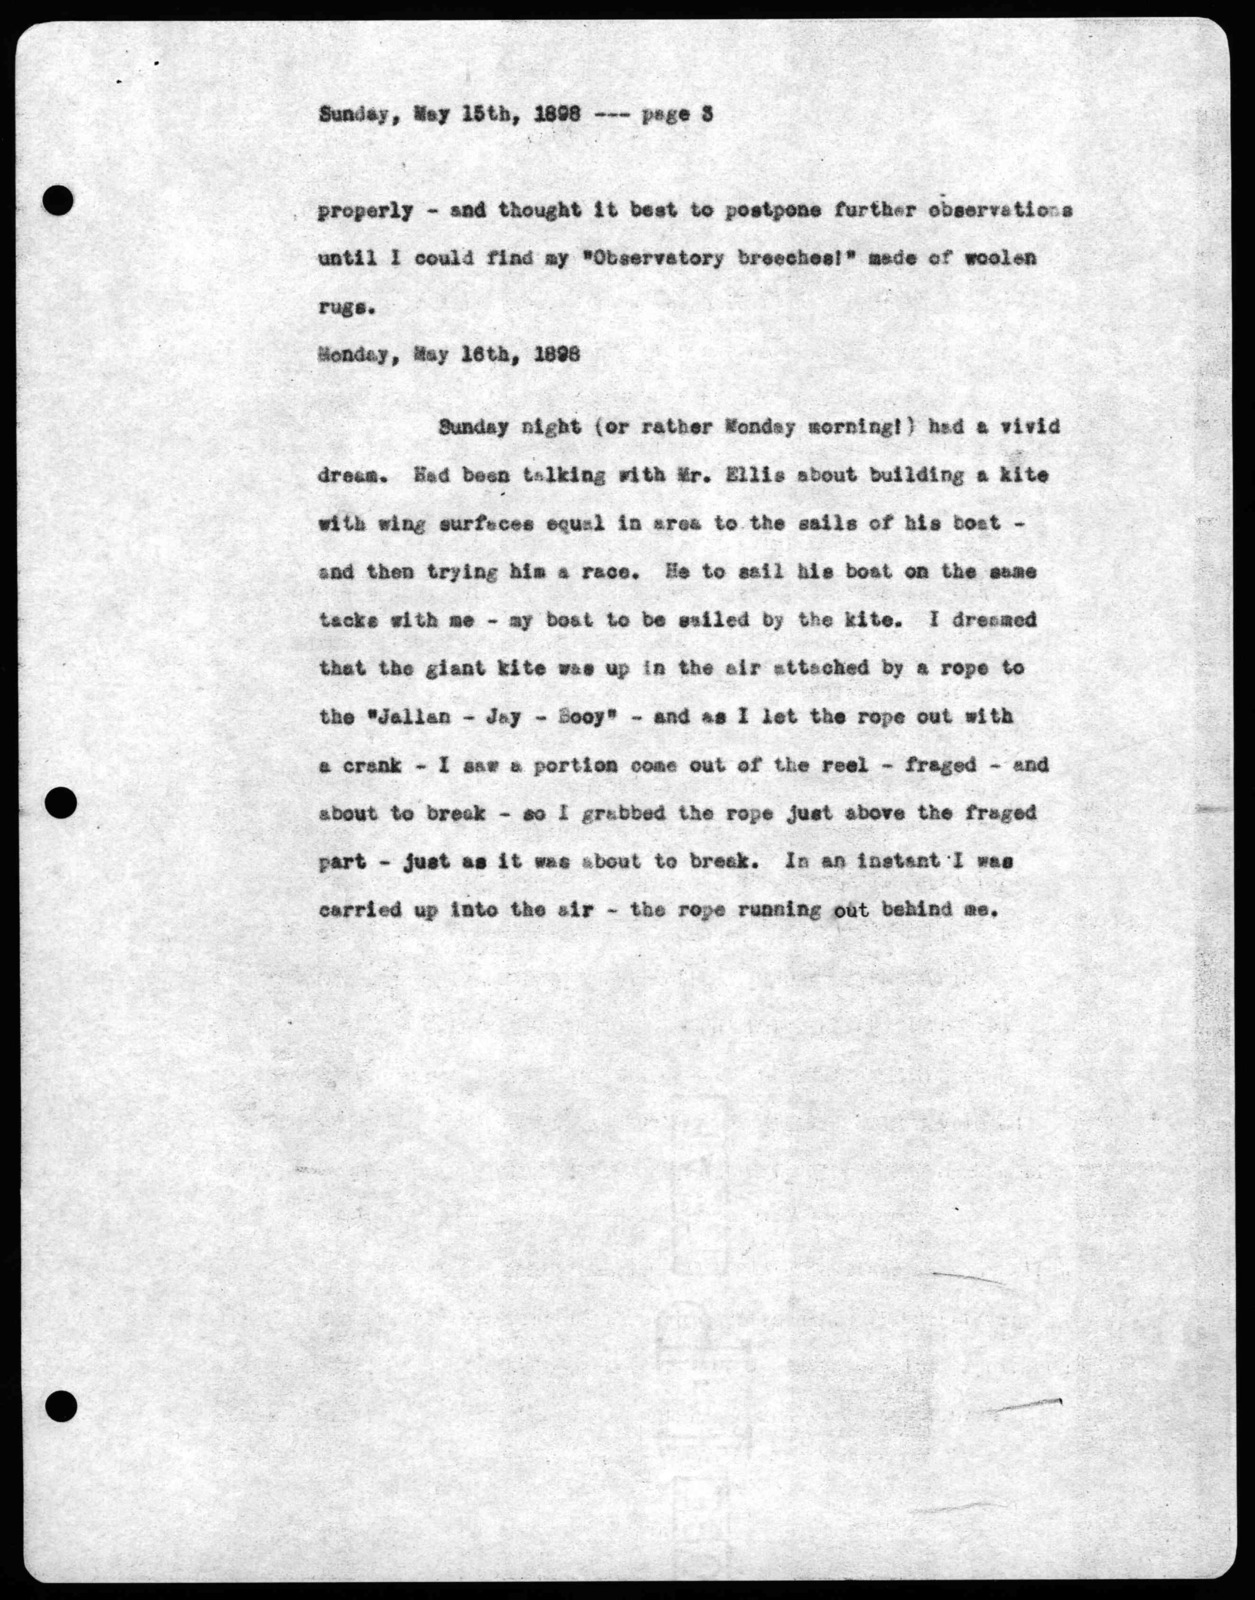 Letter from Alexander Graham Bell to Mabel Hubbard Bell, May 14